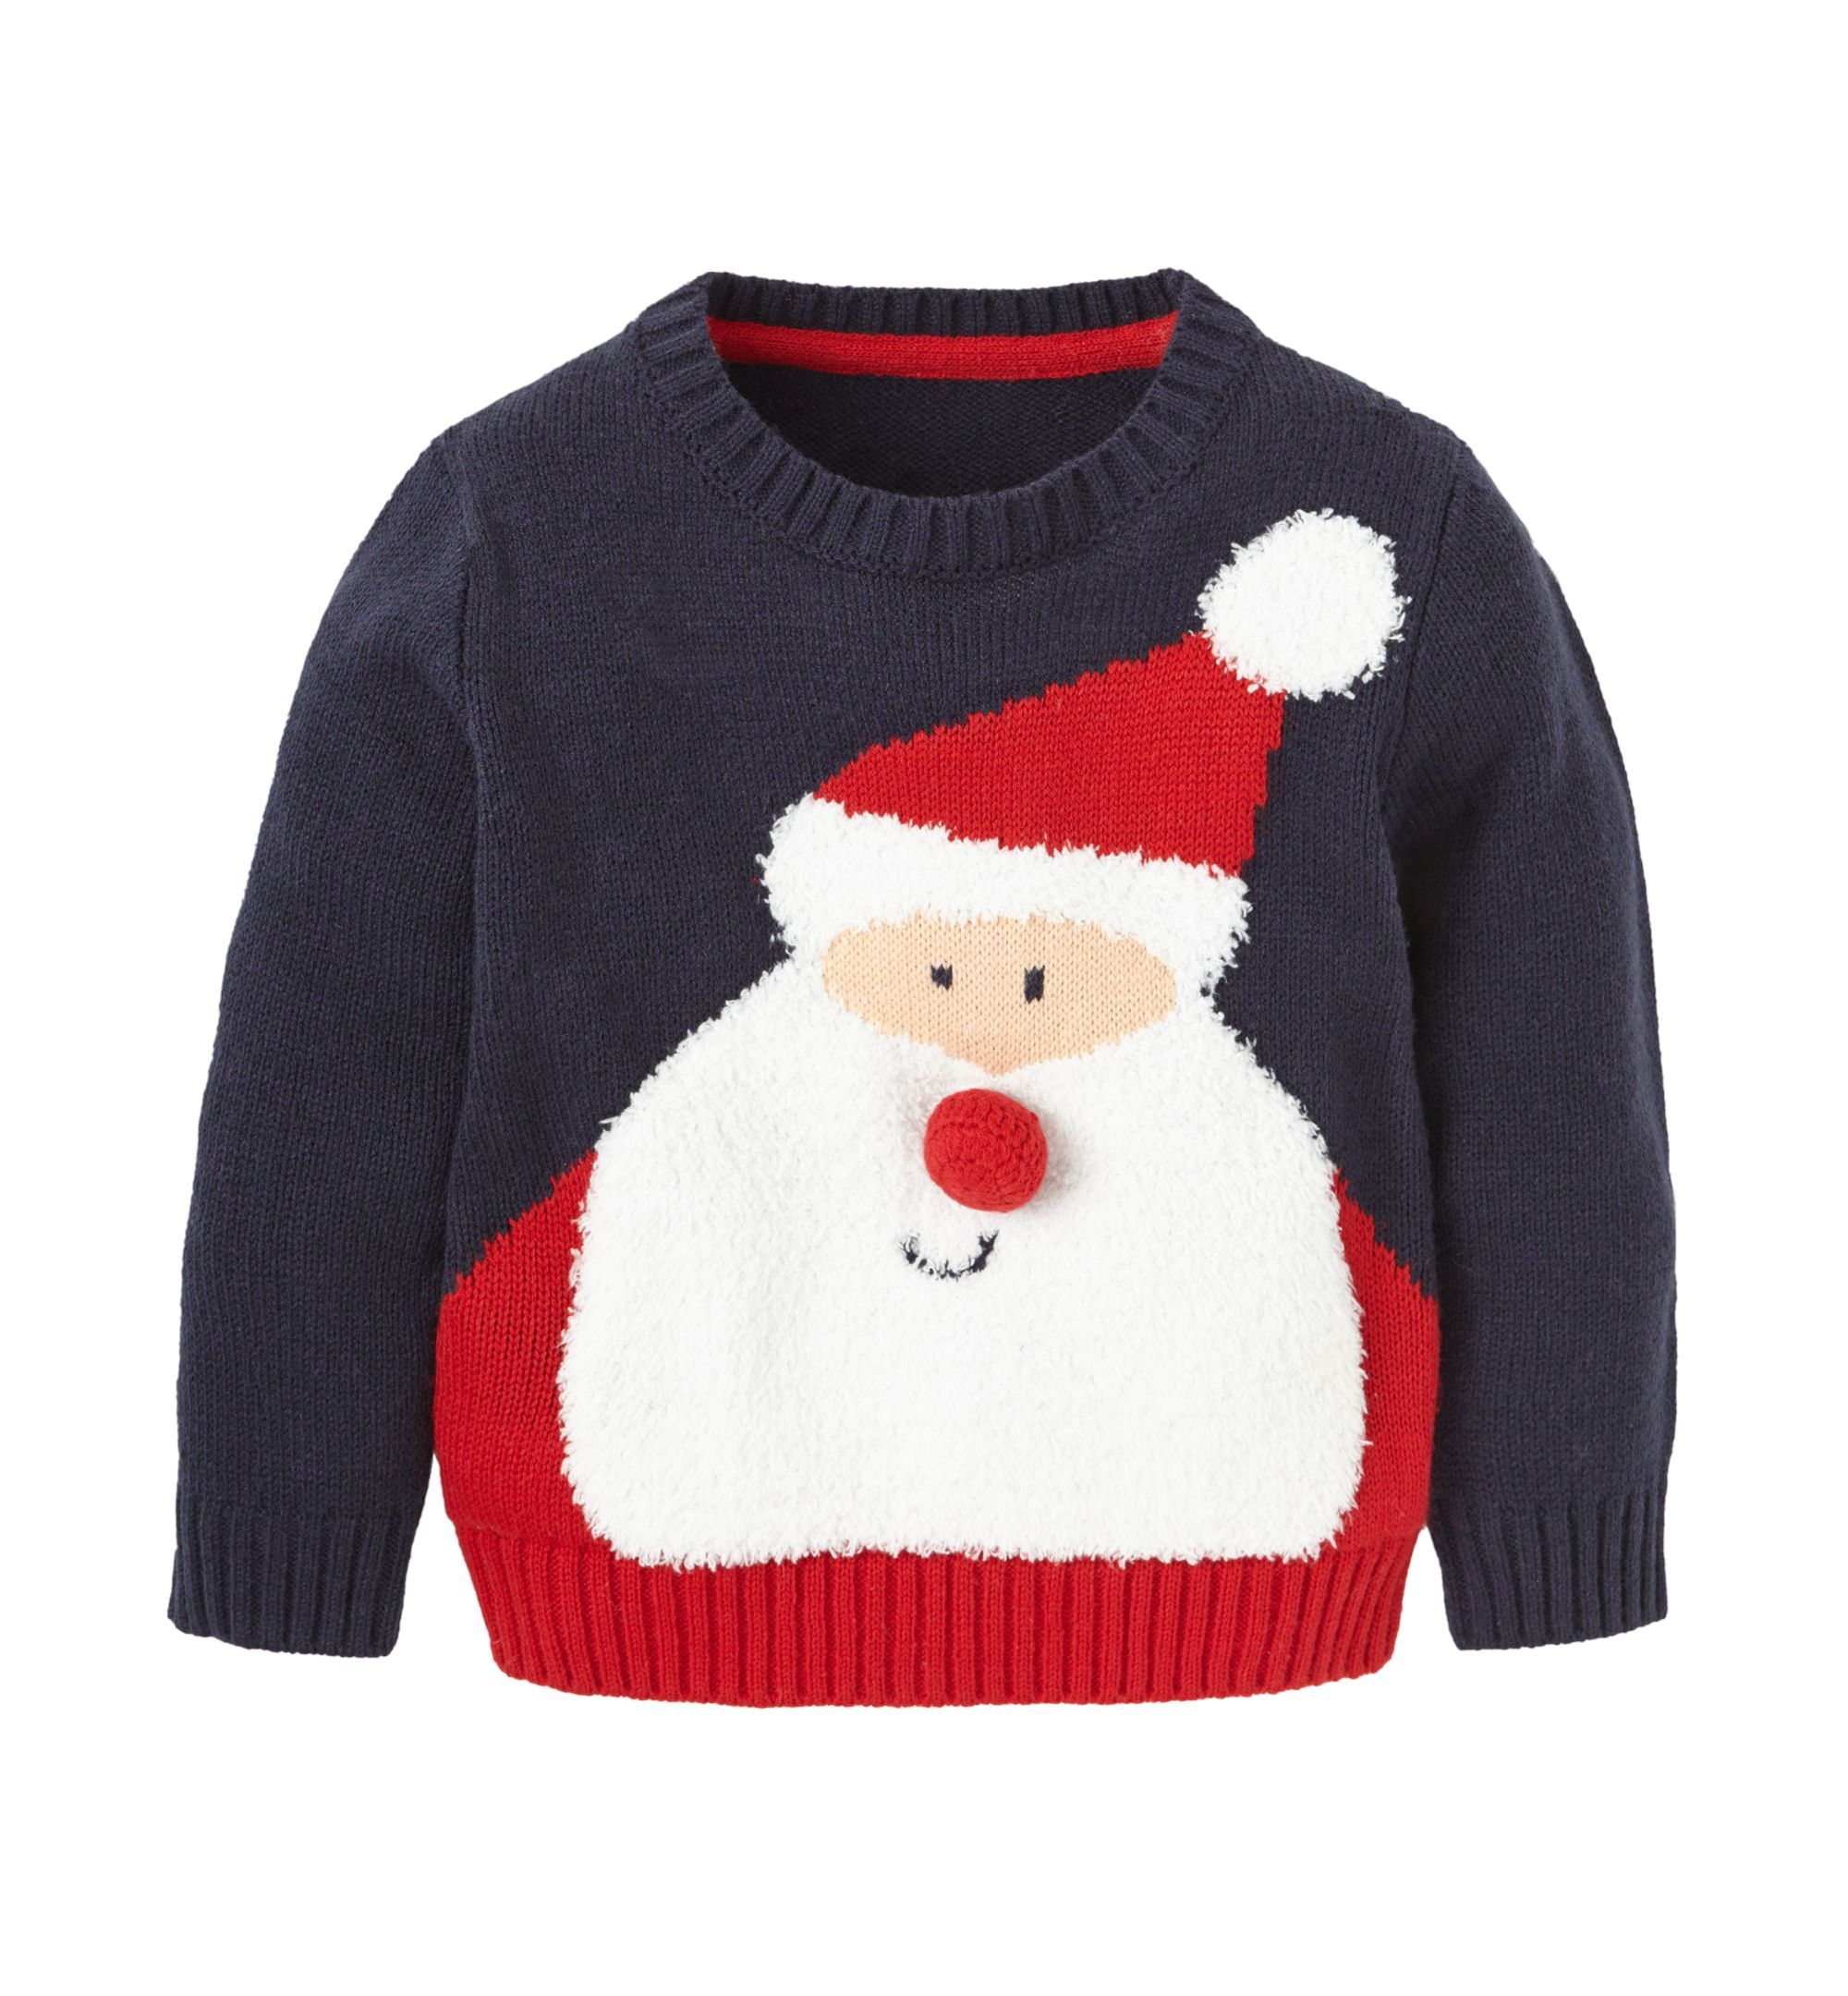 Christmas clothing All your Christmas clothing needs are covered in the fantastic selection available at George. From a great range of ever popular Christmas jumpers, occasion wear and fancy dress costumes for the many seasonal parties you'll be attending, to gift ideas including novelty socks, luxurious nightwear and slippers.